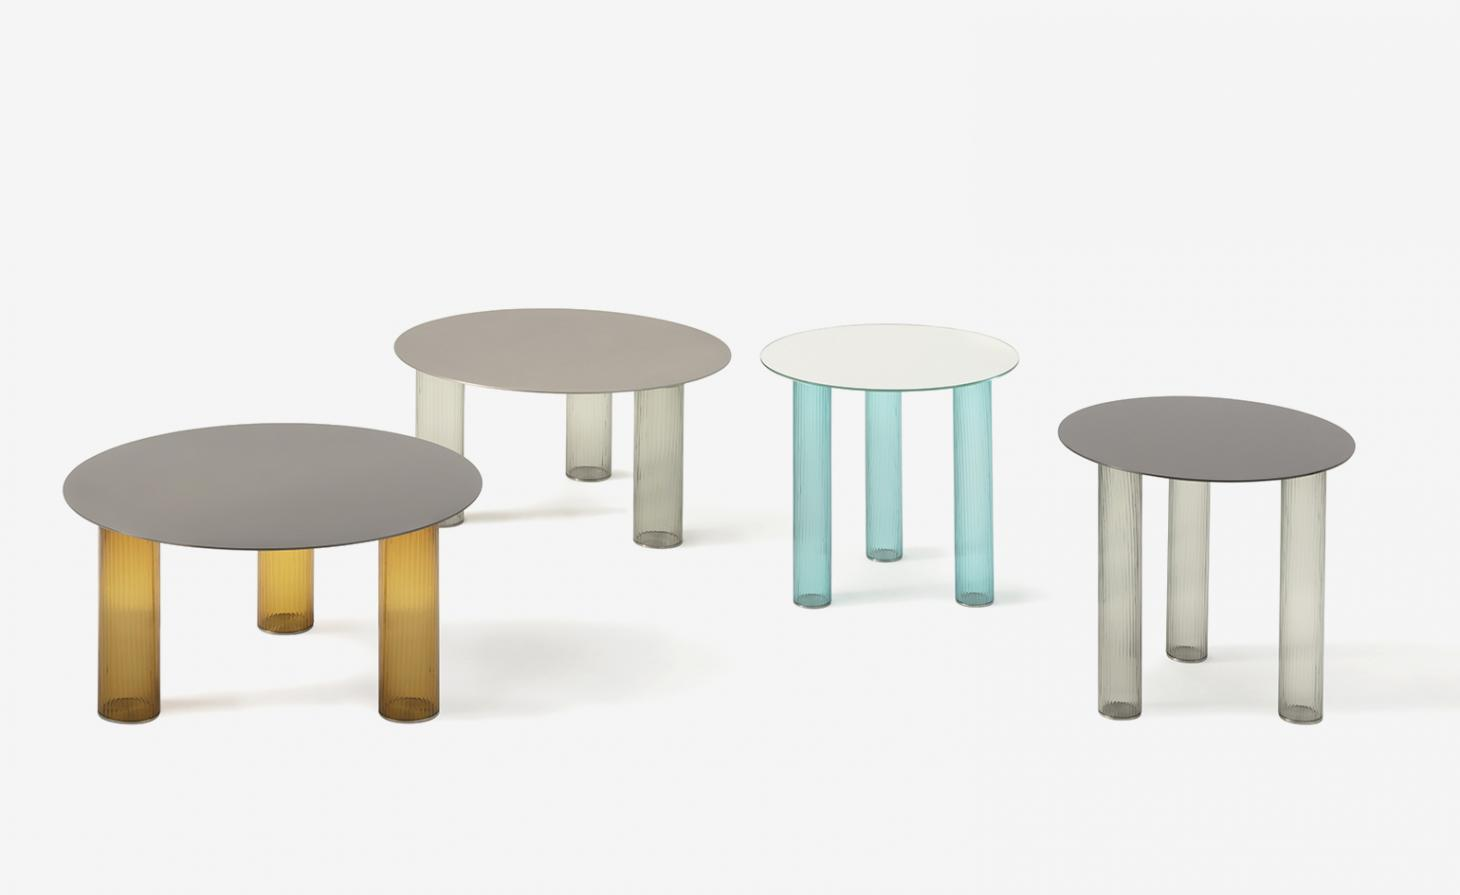 Echino Table by Sebastian Herkner for Zanotta